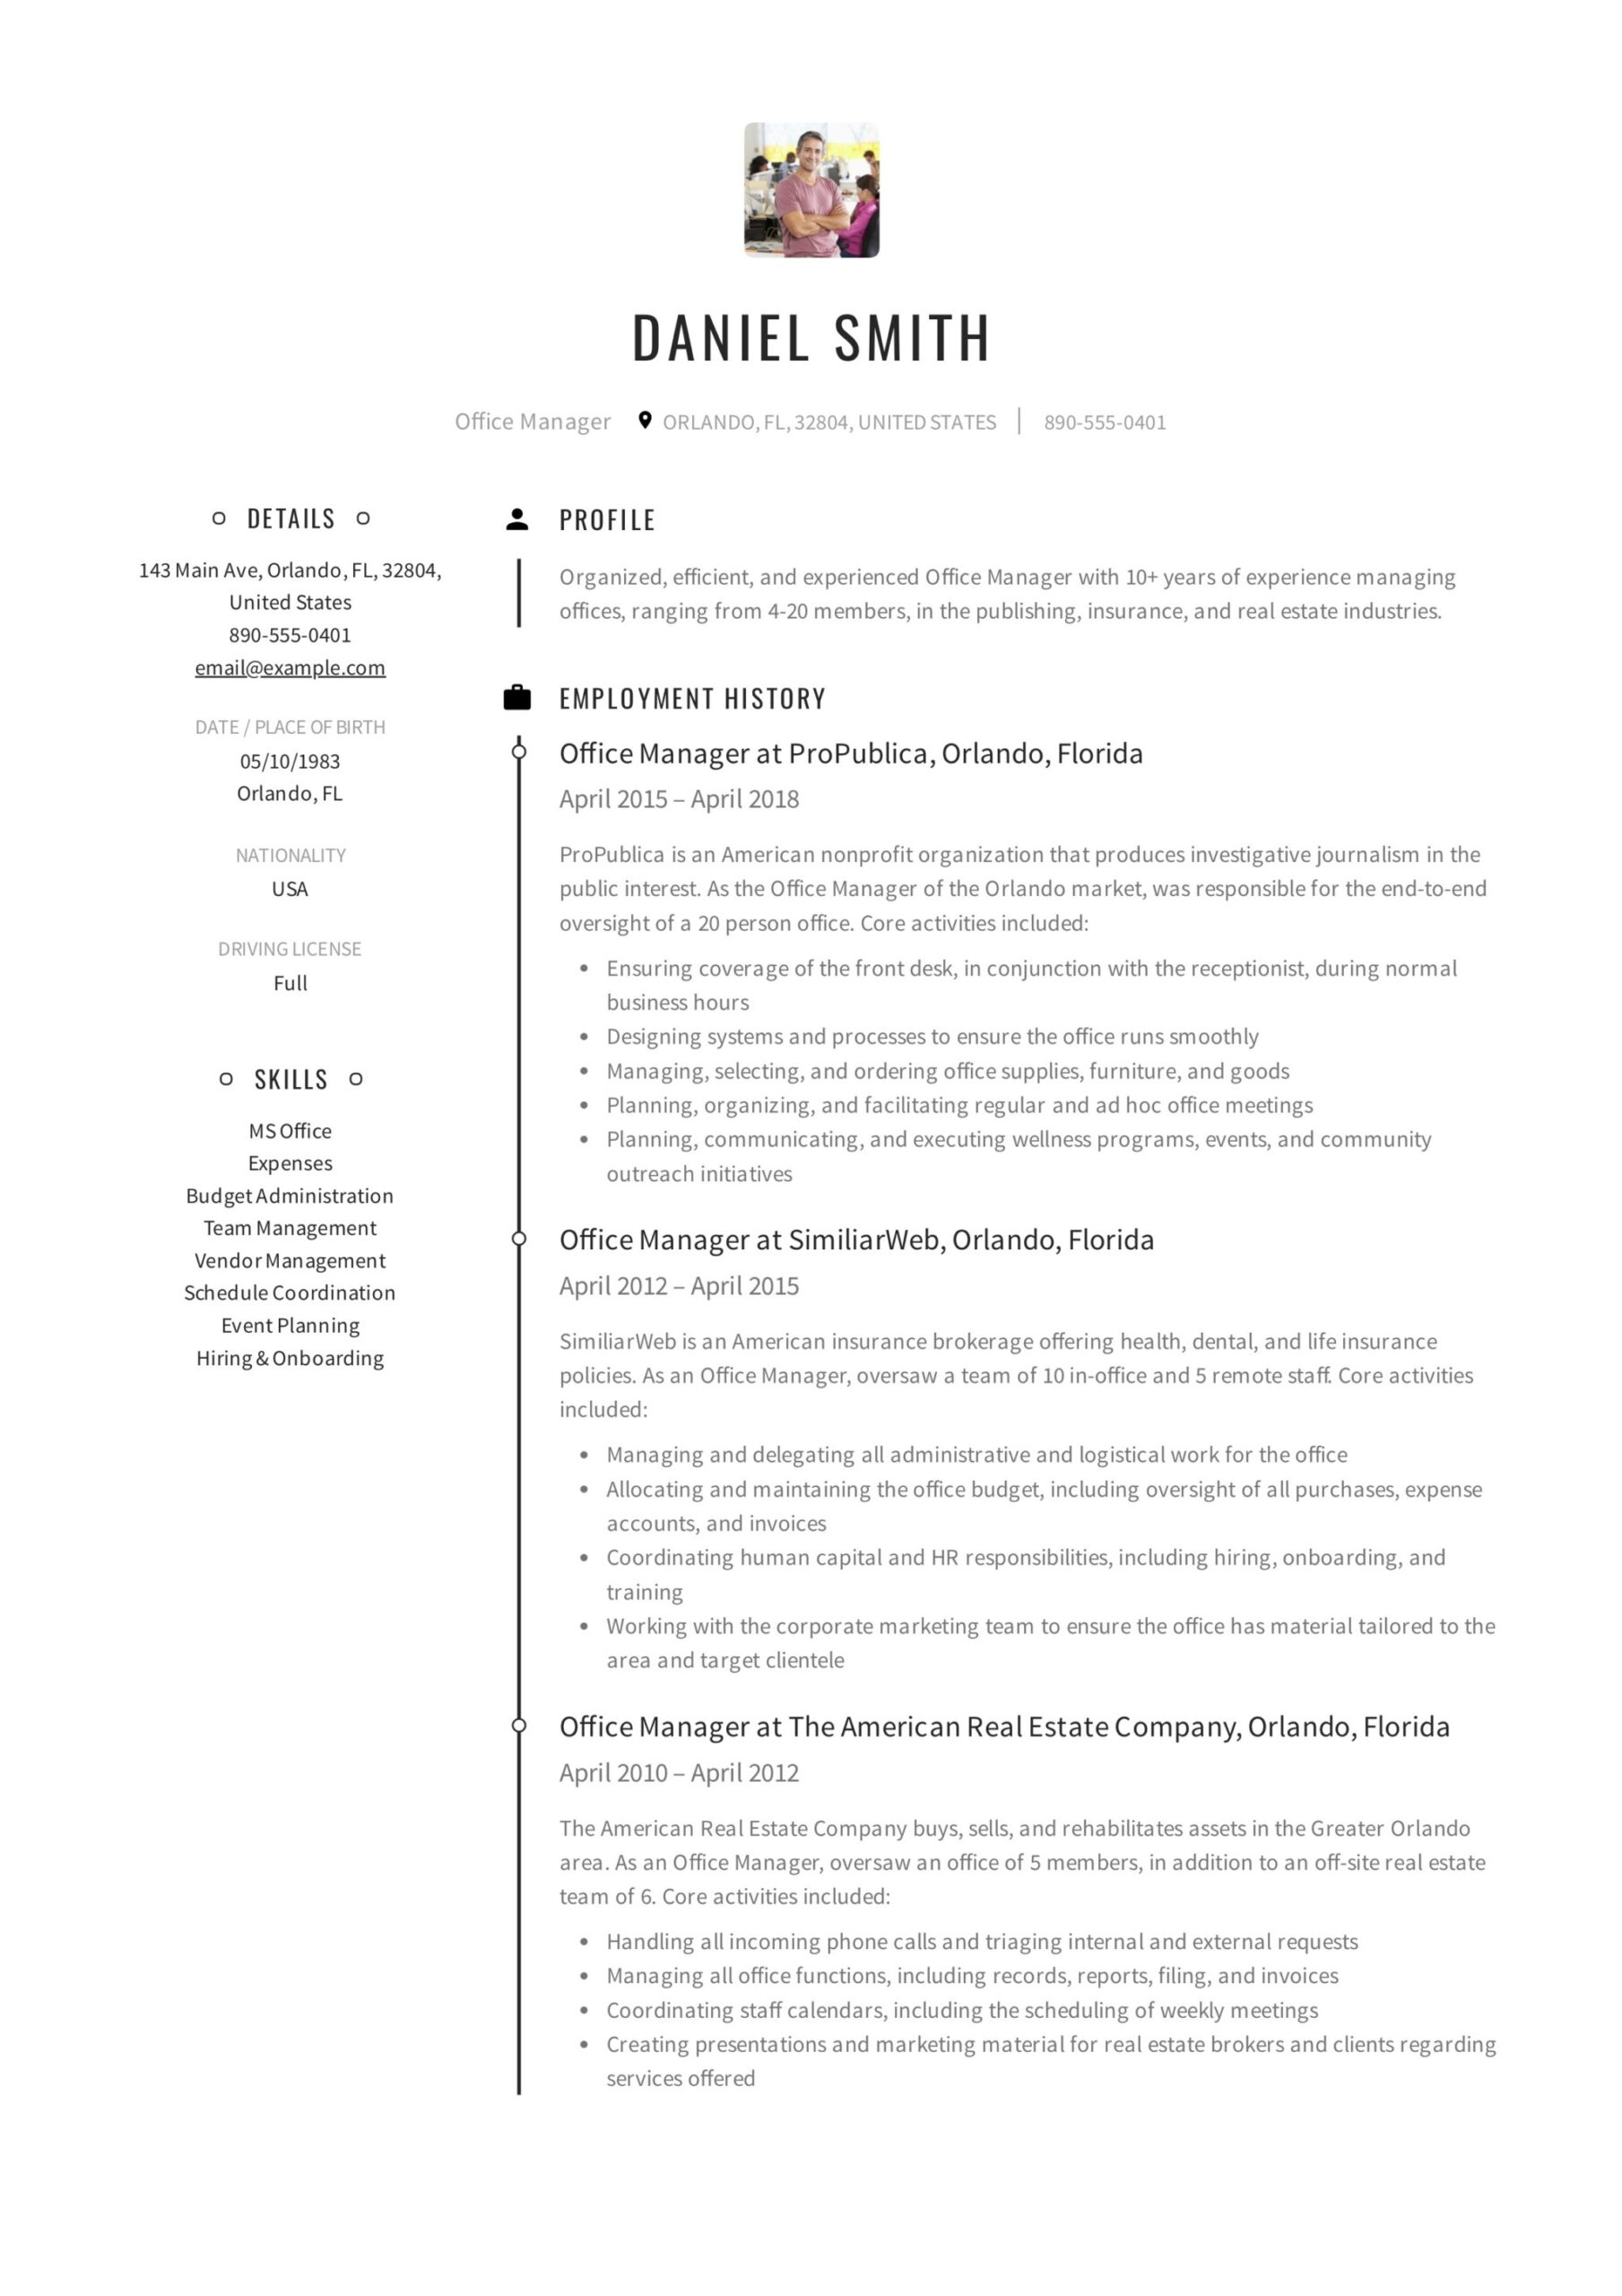 office manager resume guide samples pdf healthcare sample example professional custodian Resume Healthcare Office Manager Resume Sample